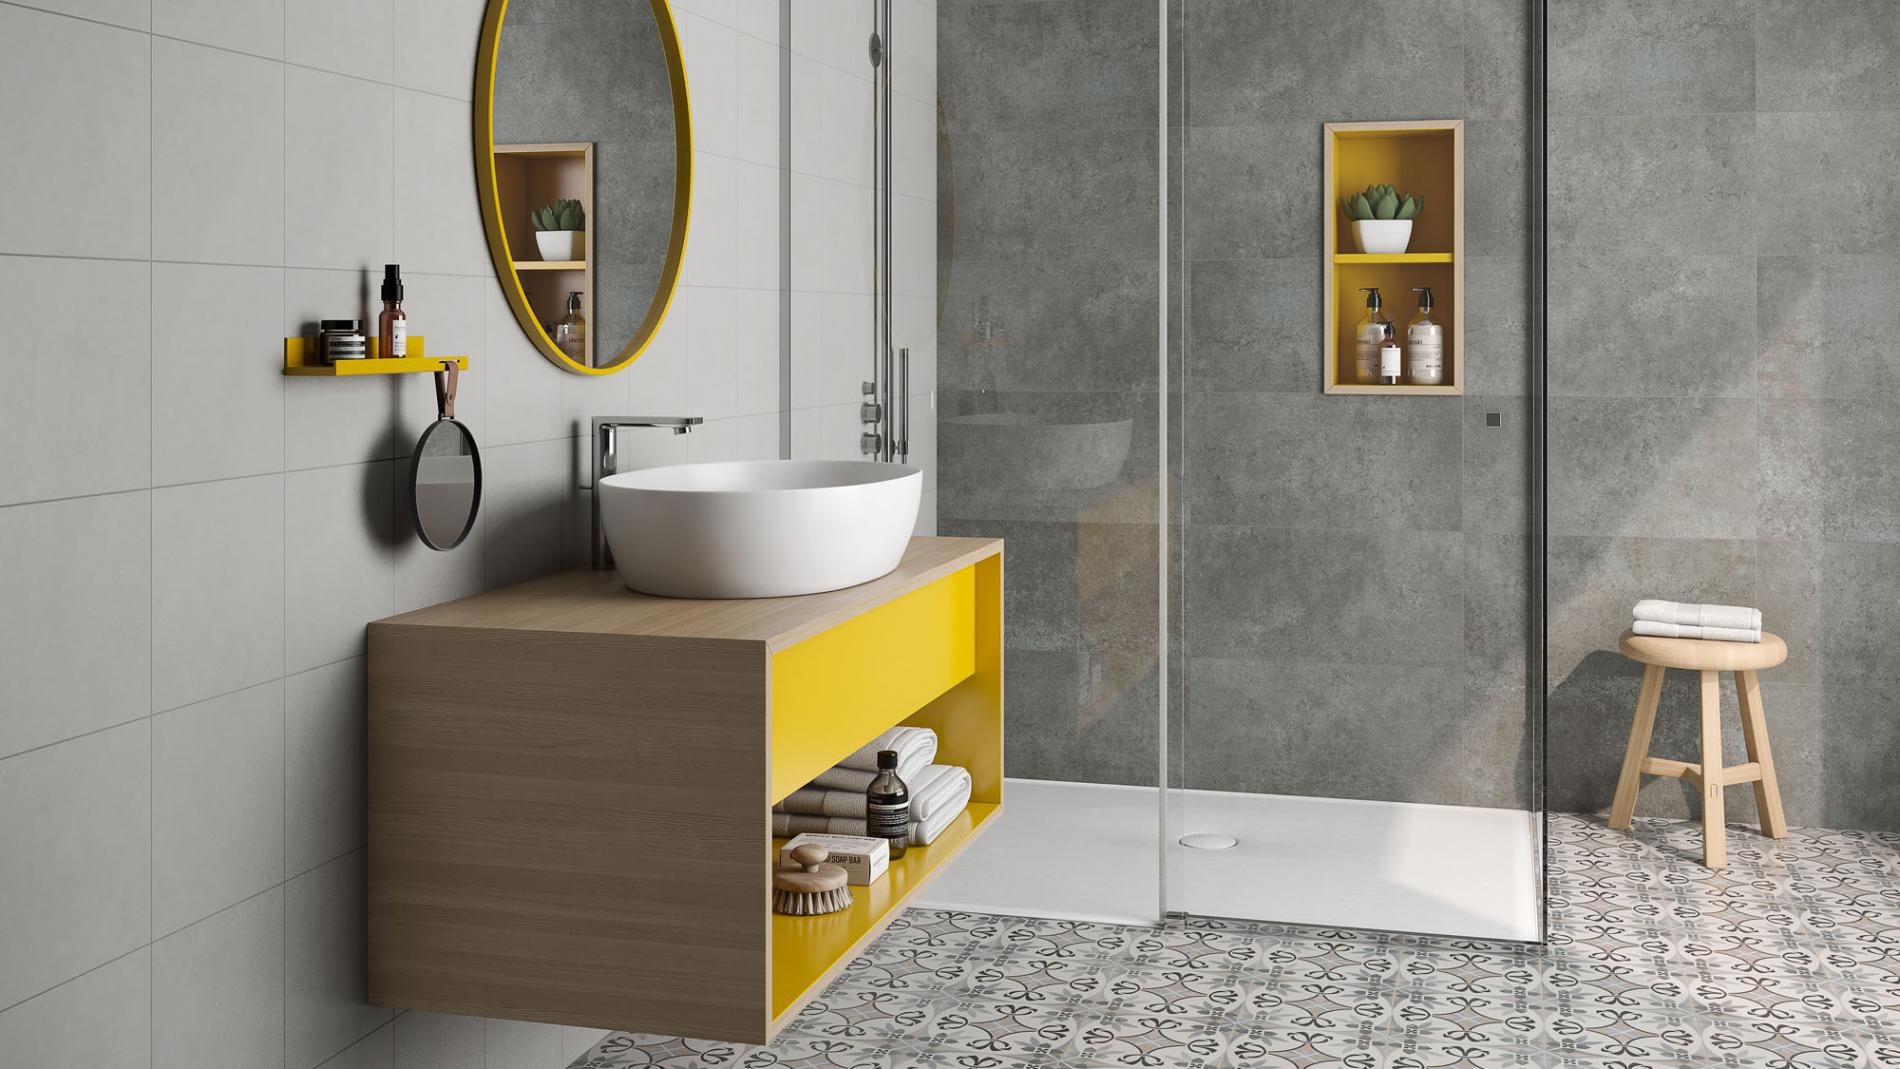 pam1900x58 Tiles dublin waterloo bathrooms commercial contracts ireland supply and fit luxury.jpg